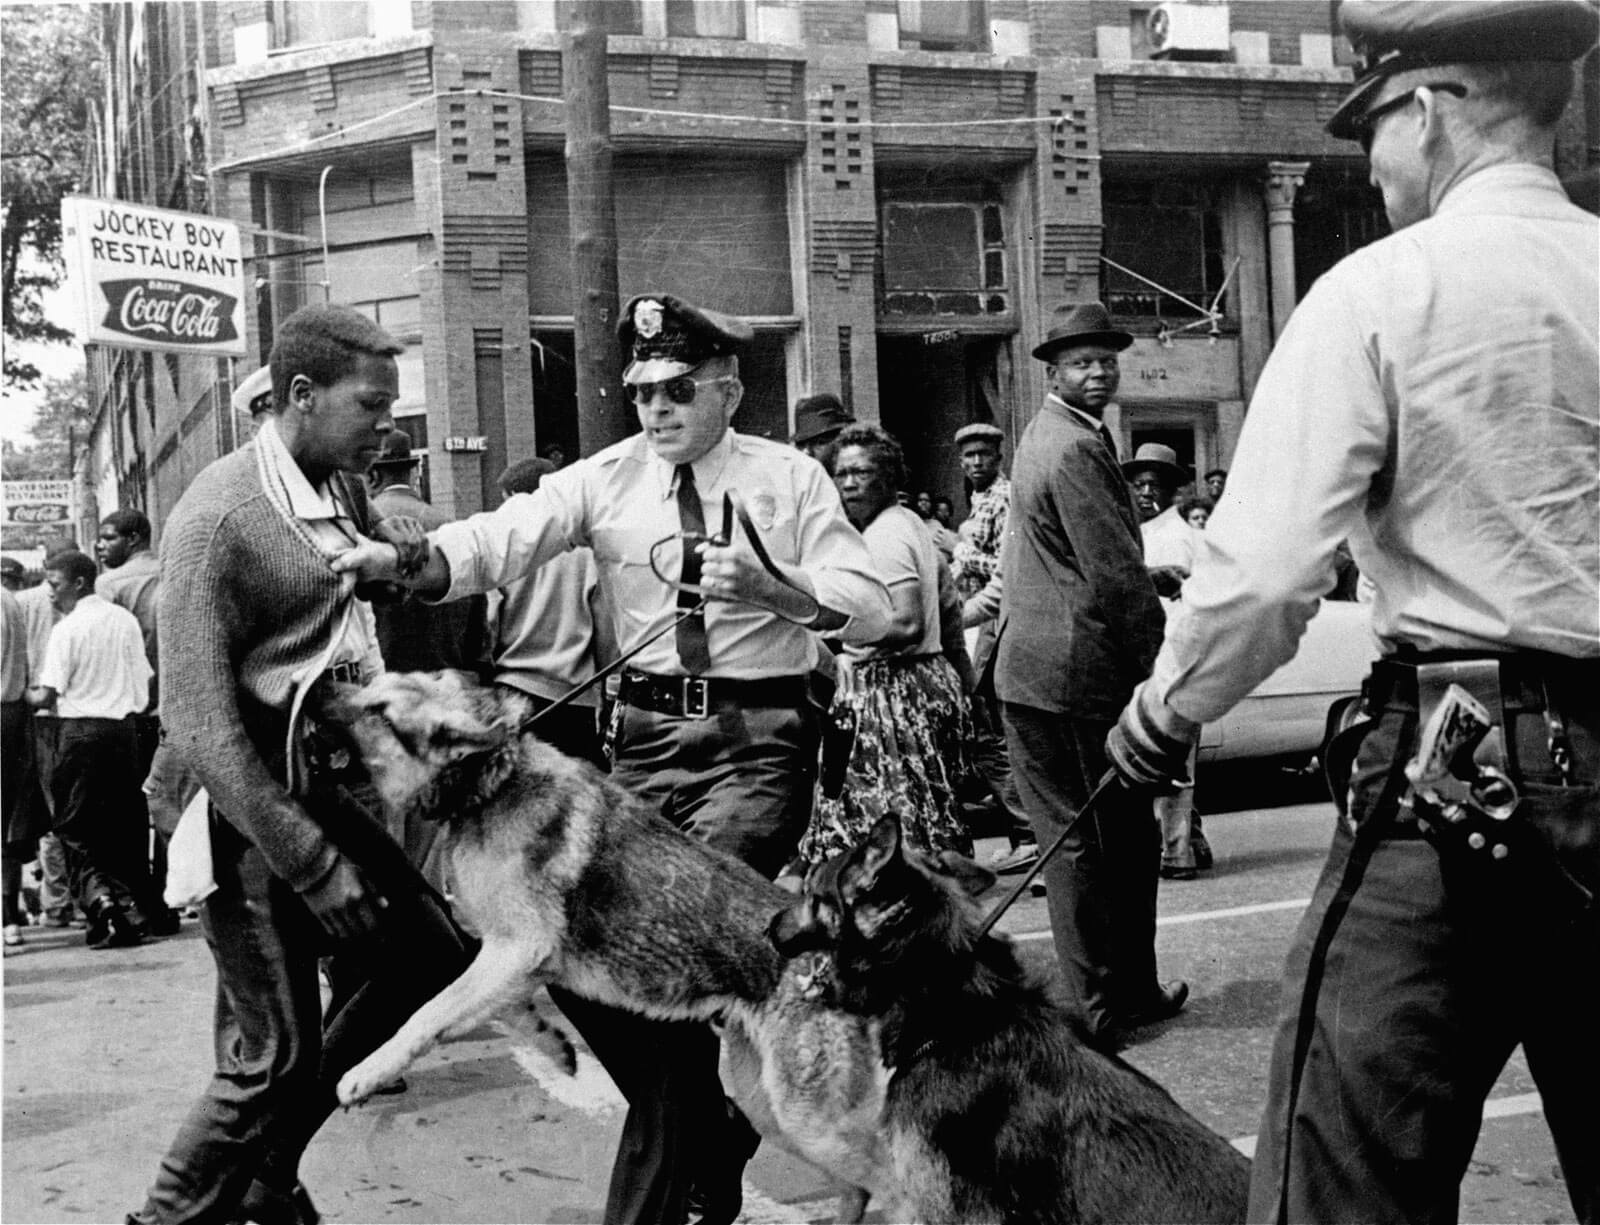 A photo showing police brutality against a black man